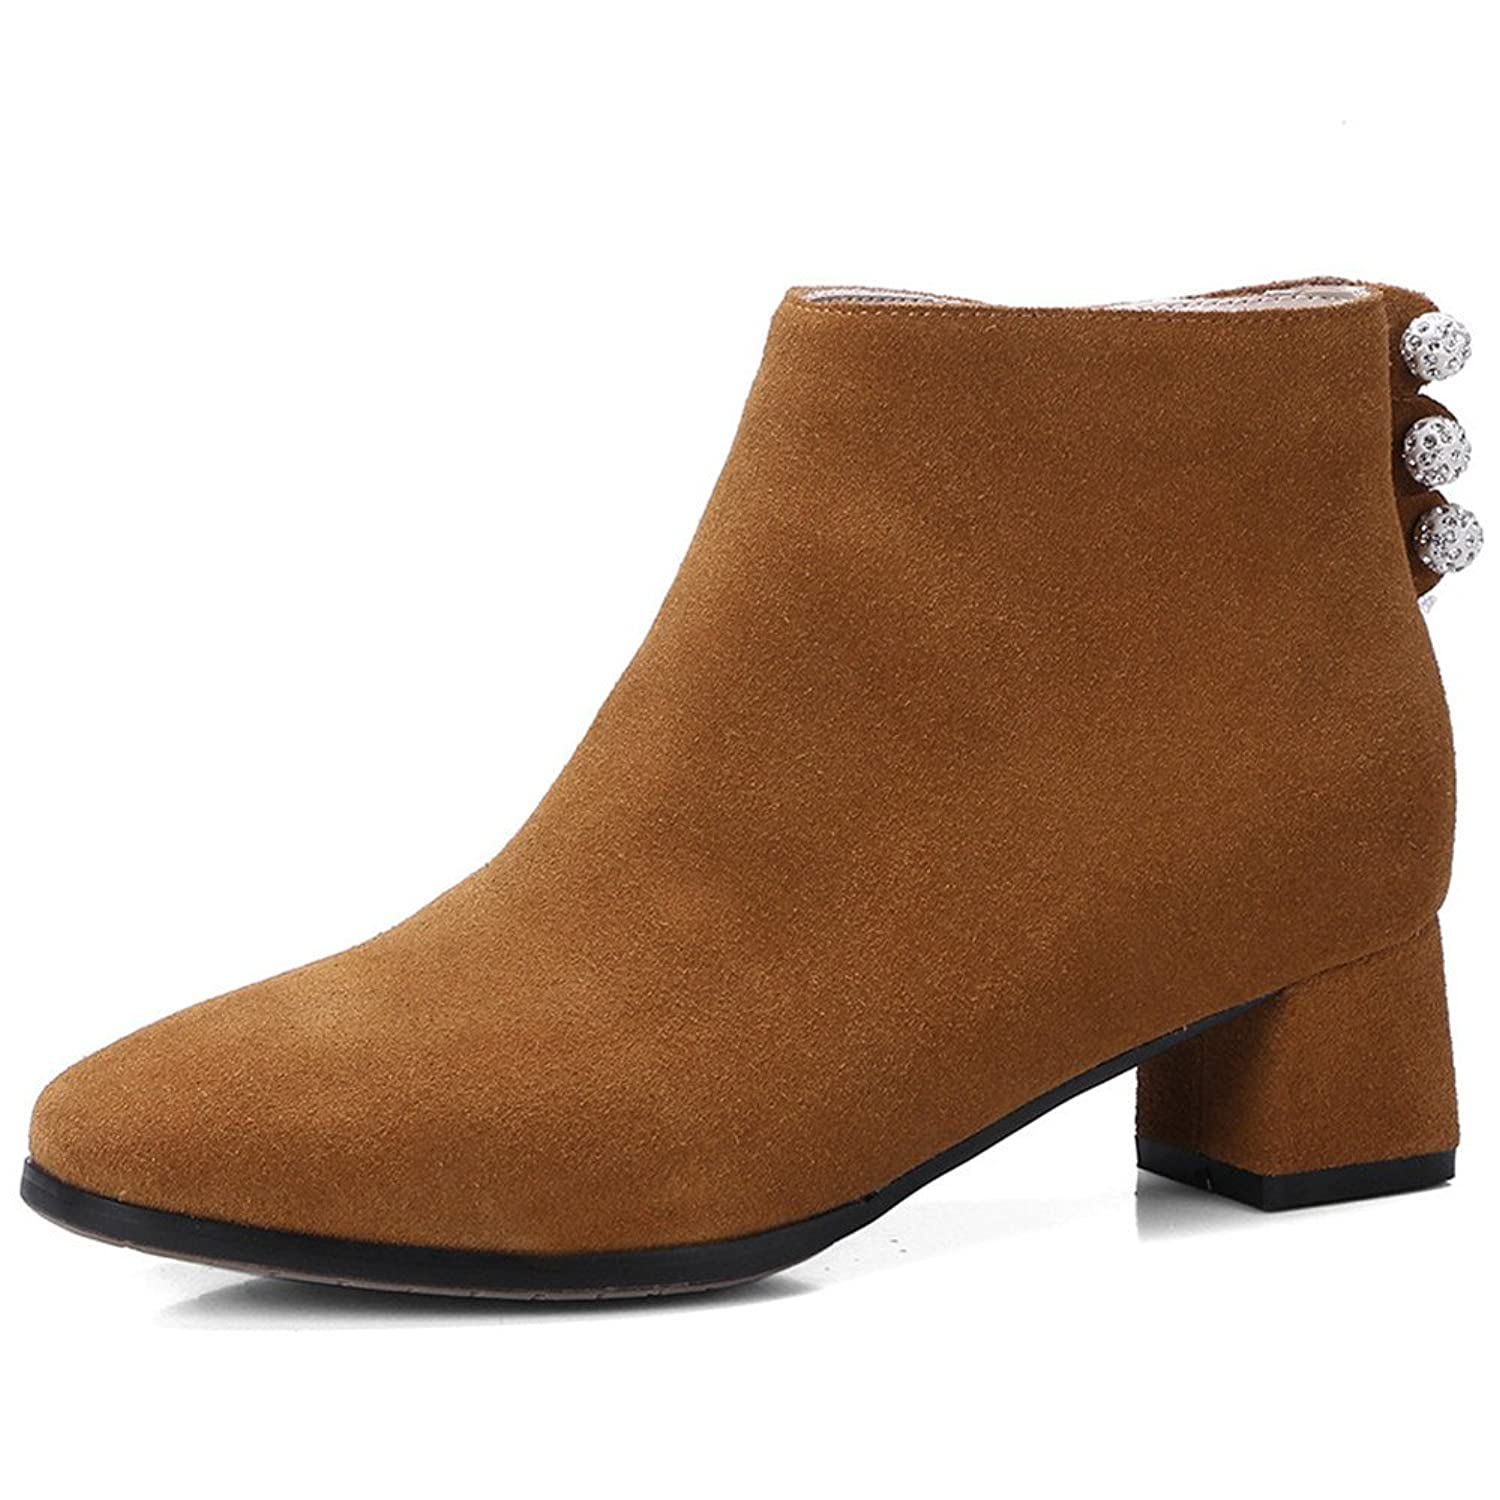 Nine Seven Suede Leather Women's Round Toe Chunky Heel Side Zip Handmade Decorated Dressy Ankle Boots